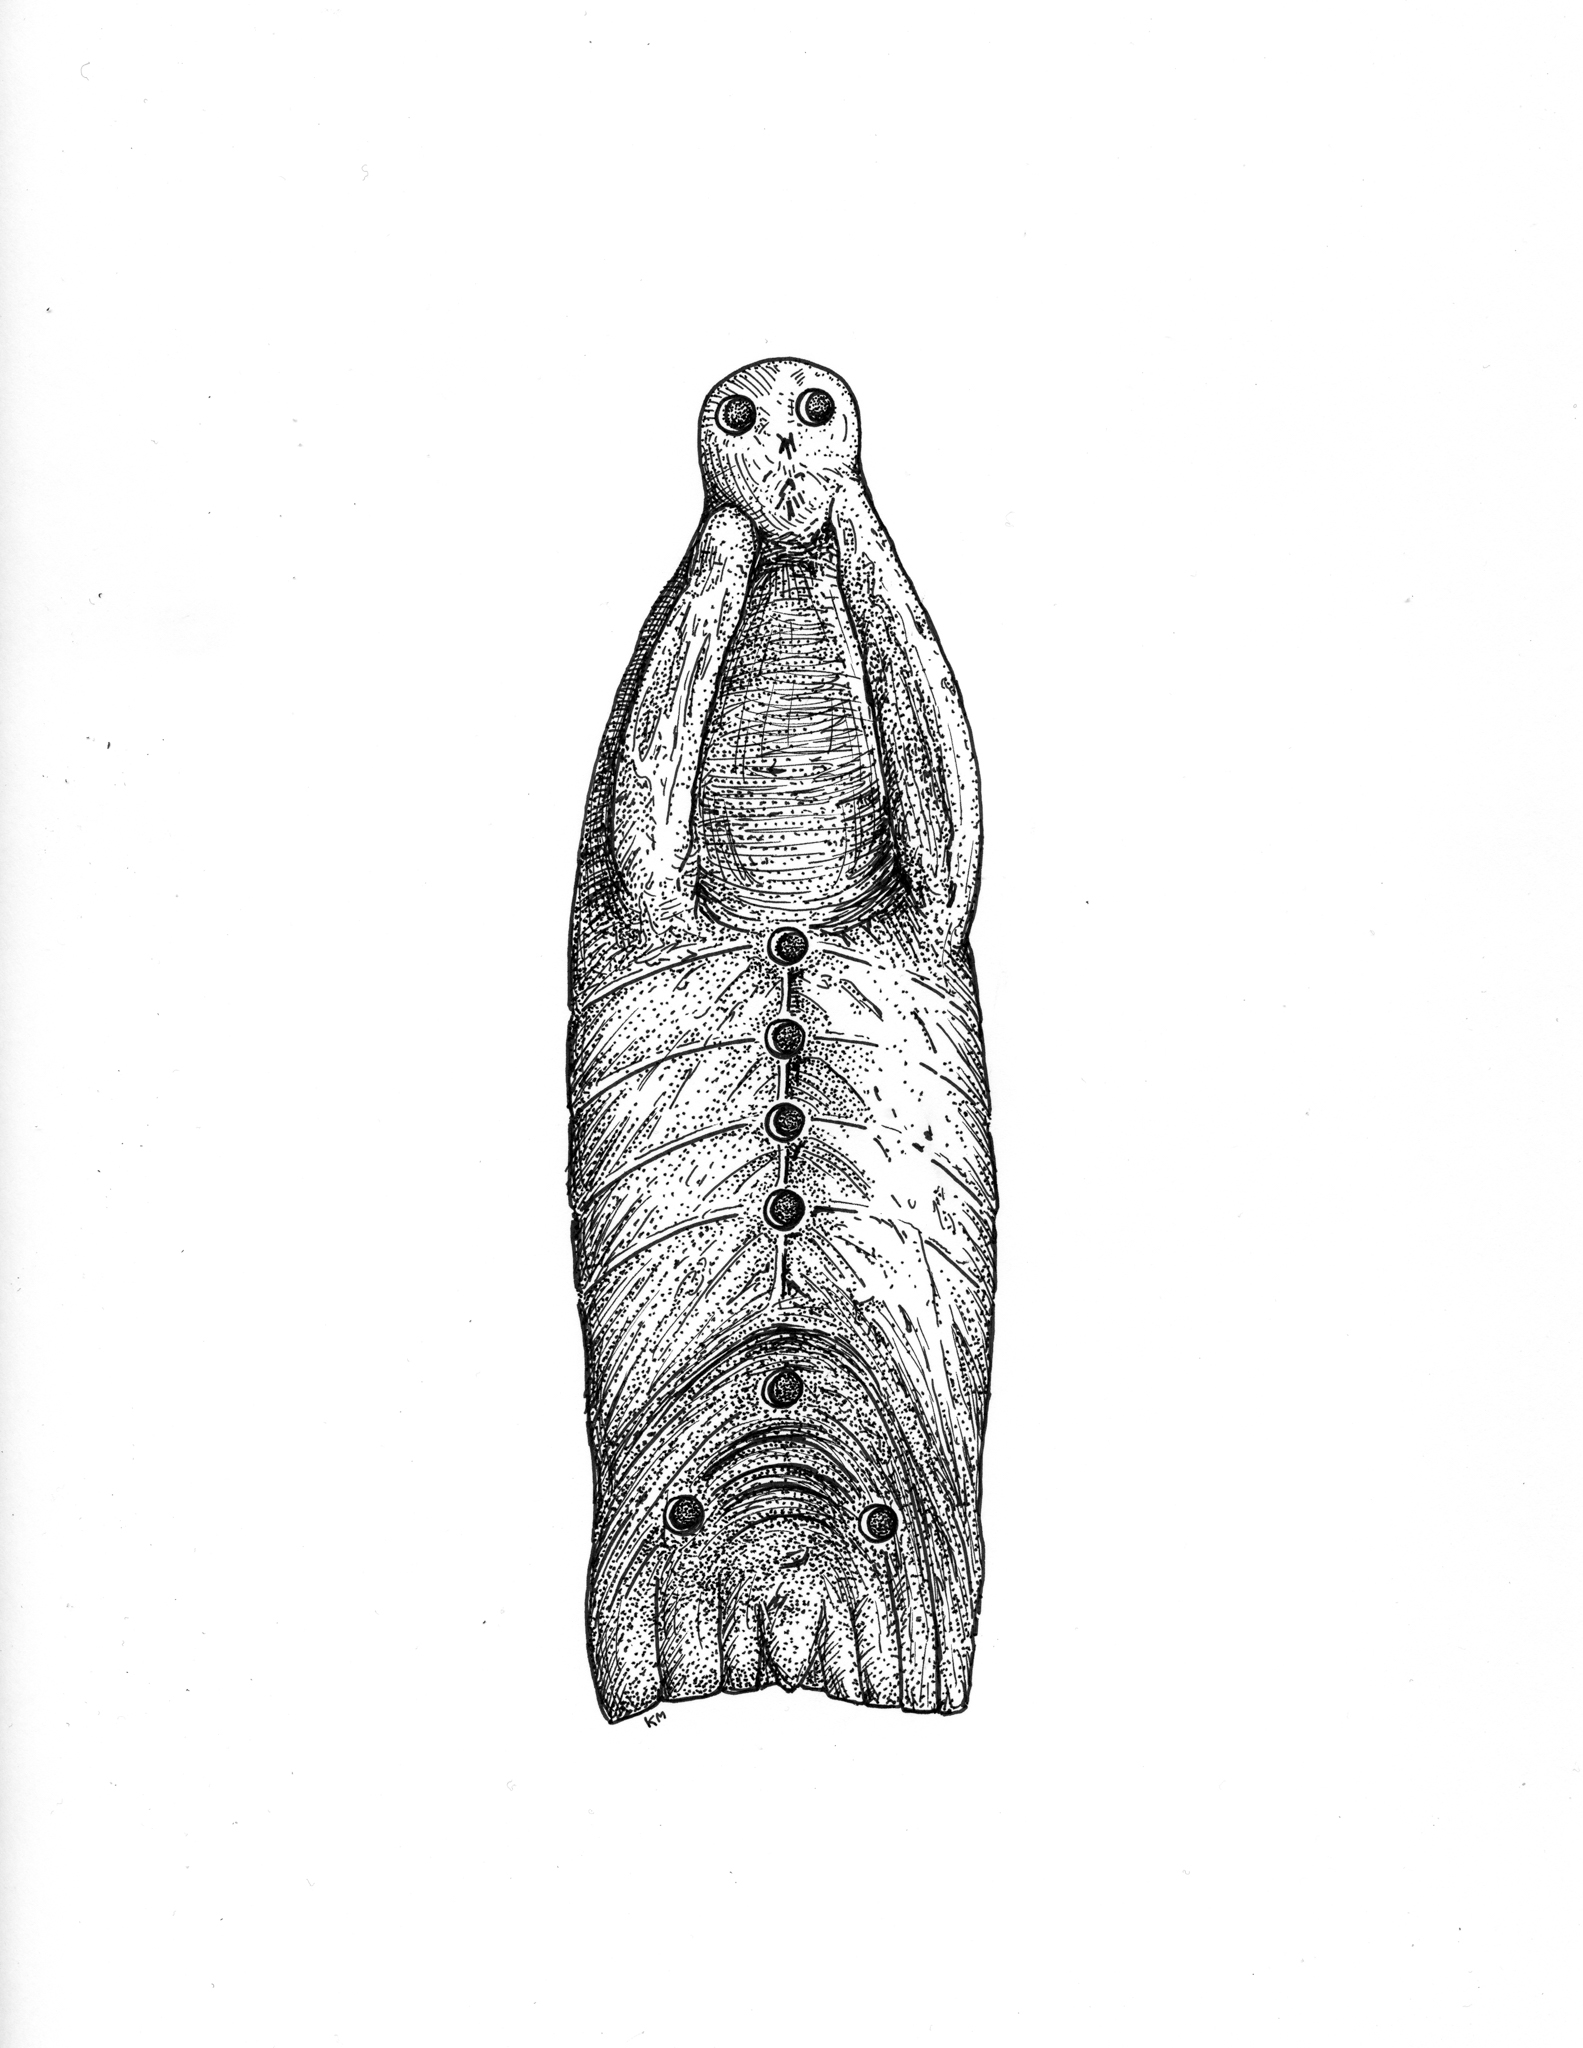 Otter carving drawing